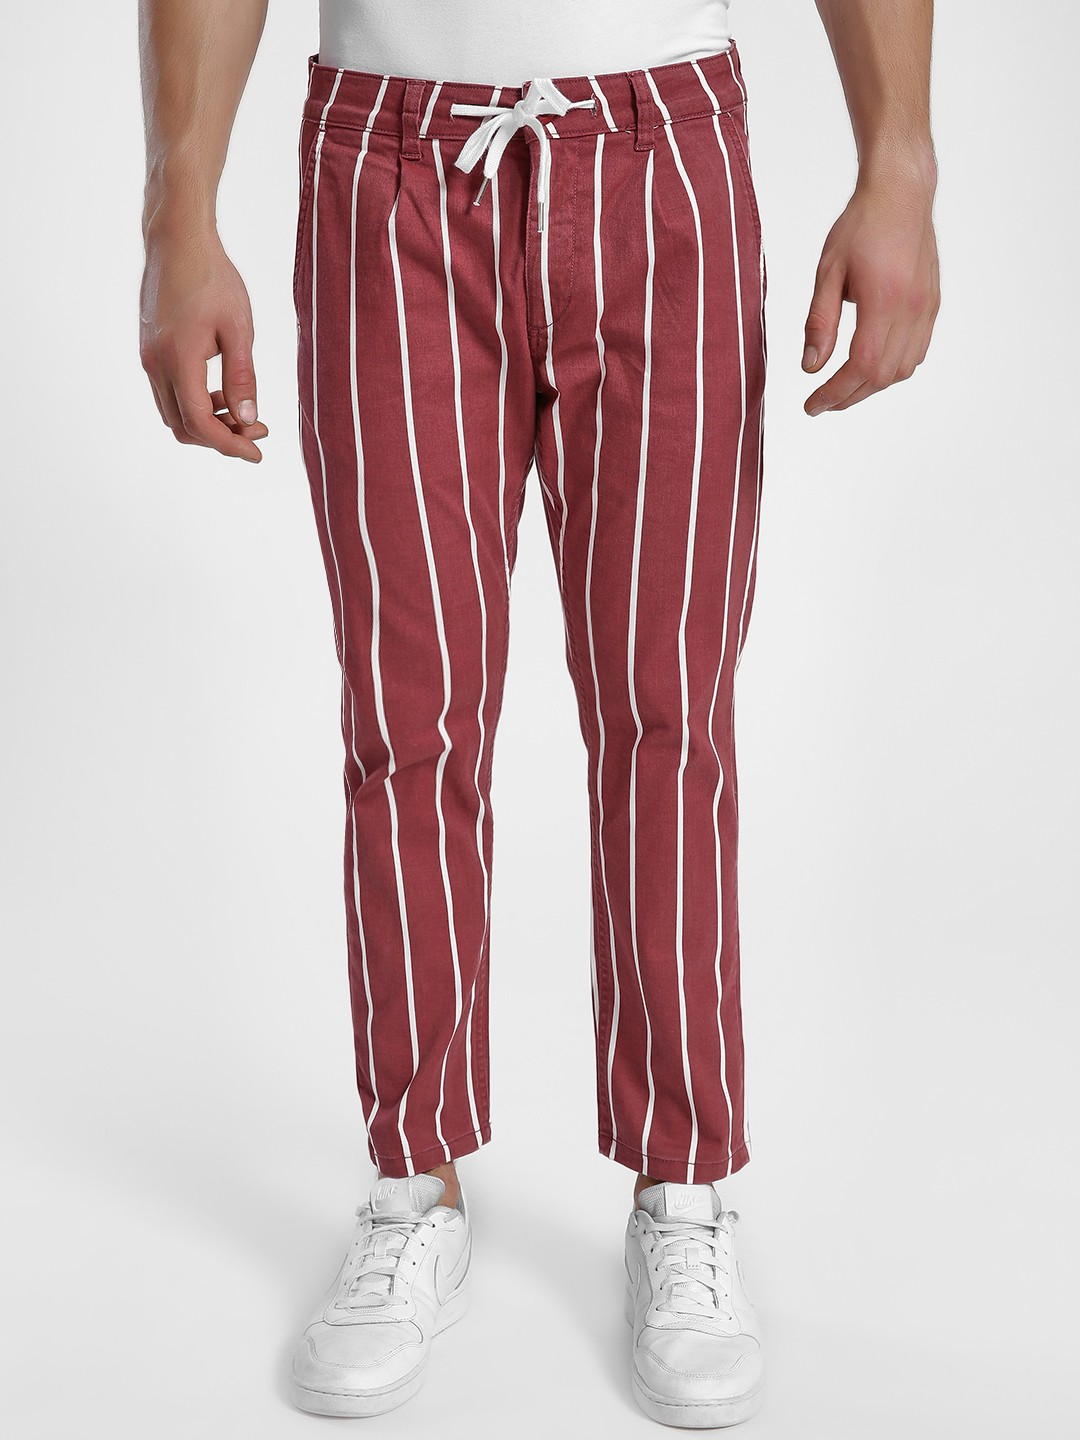 X.O.Y.O Red Vertical Stripe Cropped Trousers 1